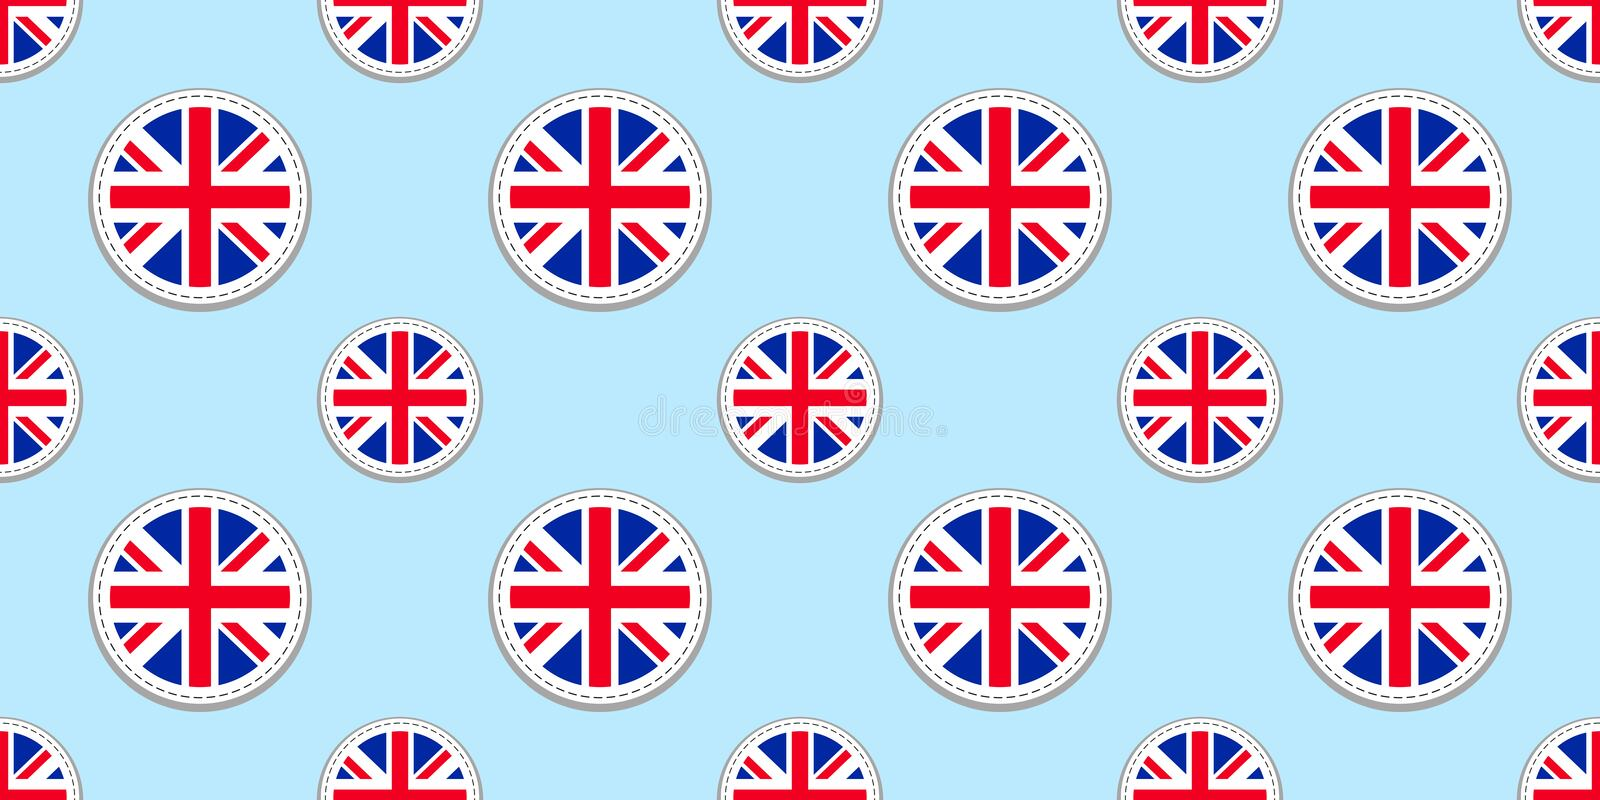 Great Britain round flag seamless pattern. British background. Vector circle icon. The United Kingdom geometric symbols. Texture f royalty free illustration